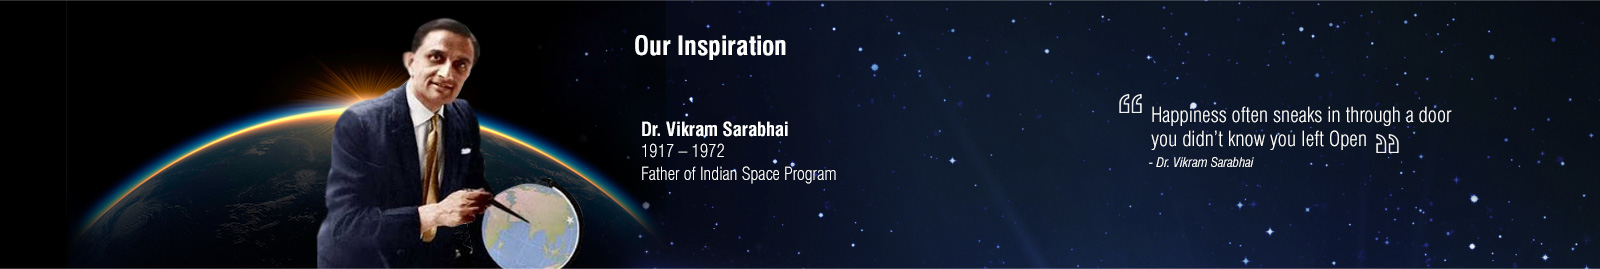 Vikram Sarabhai Science Foundation